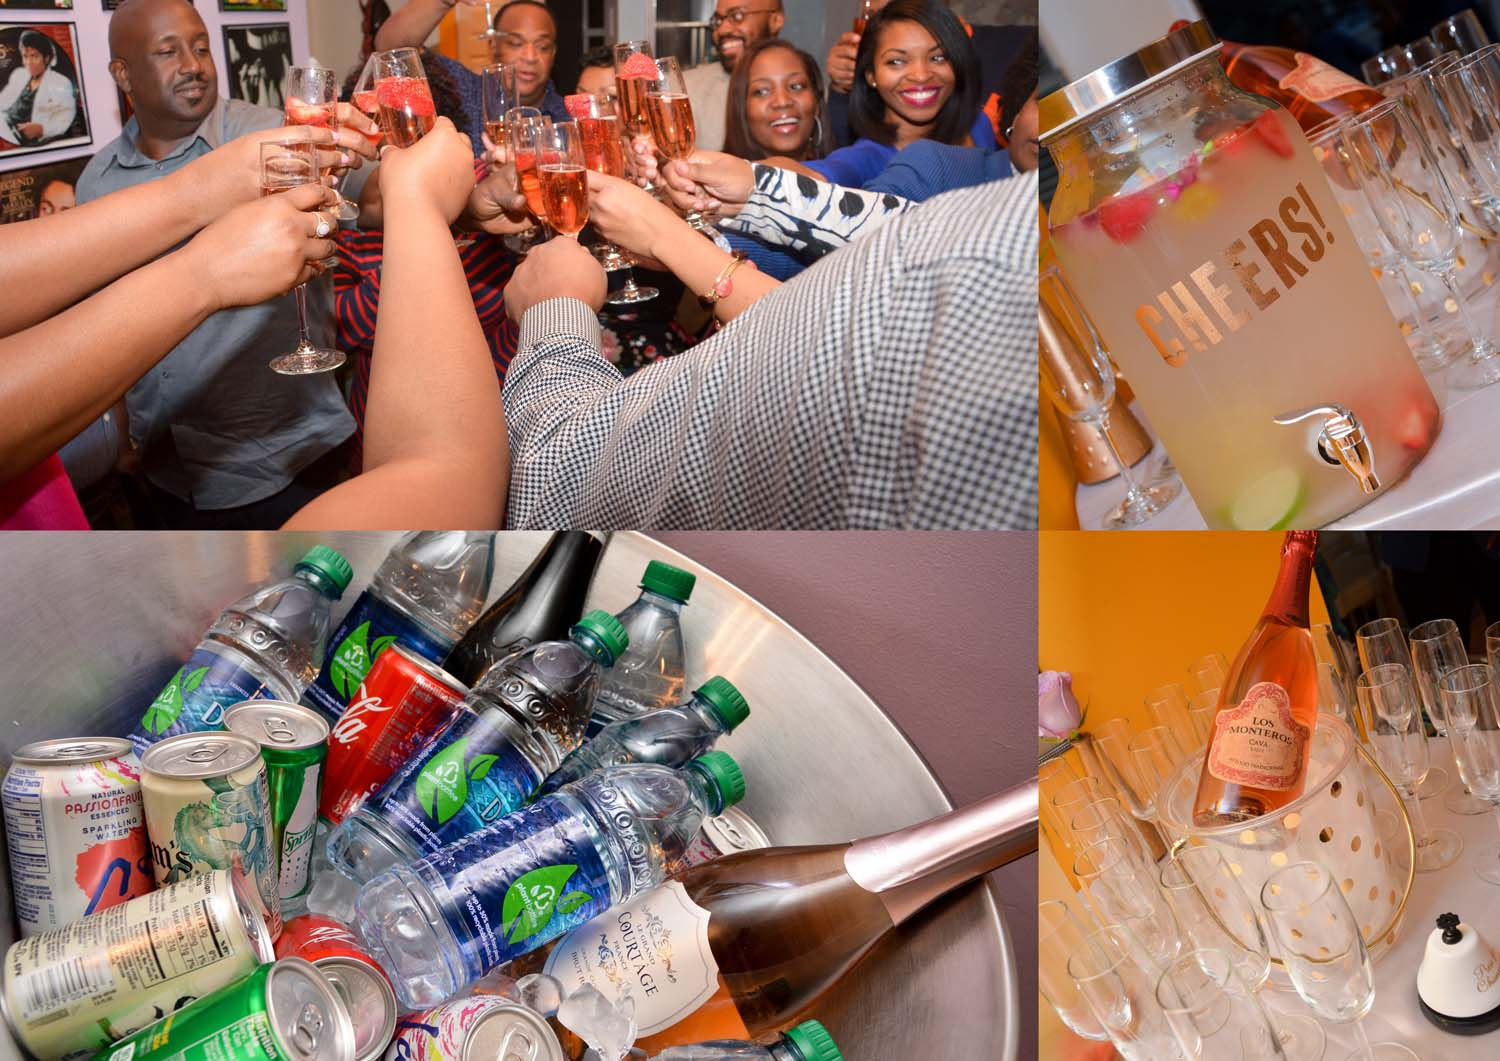 your choice of drinks and champayne for birthday toast